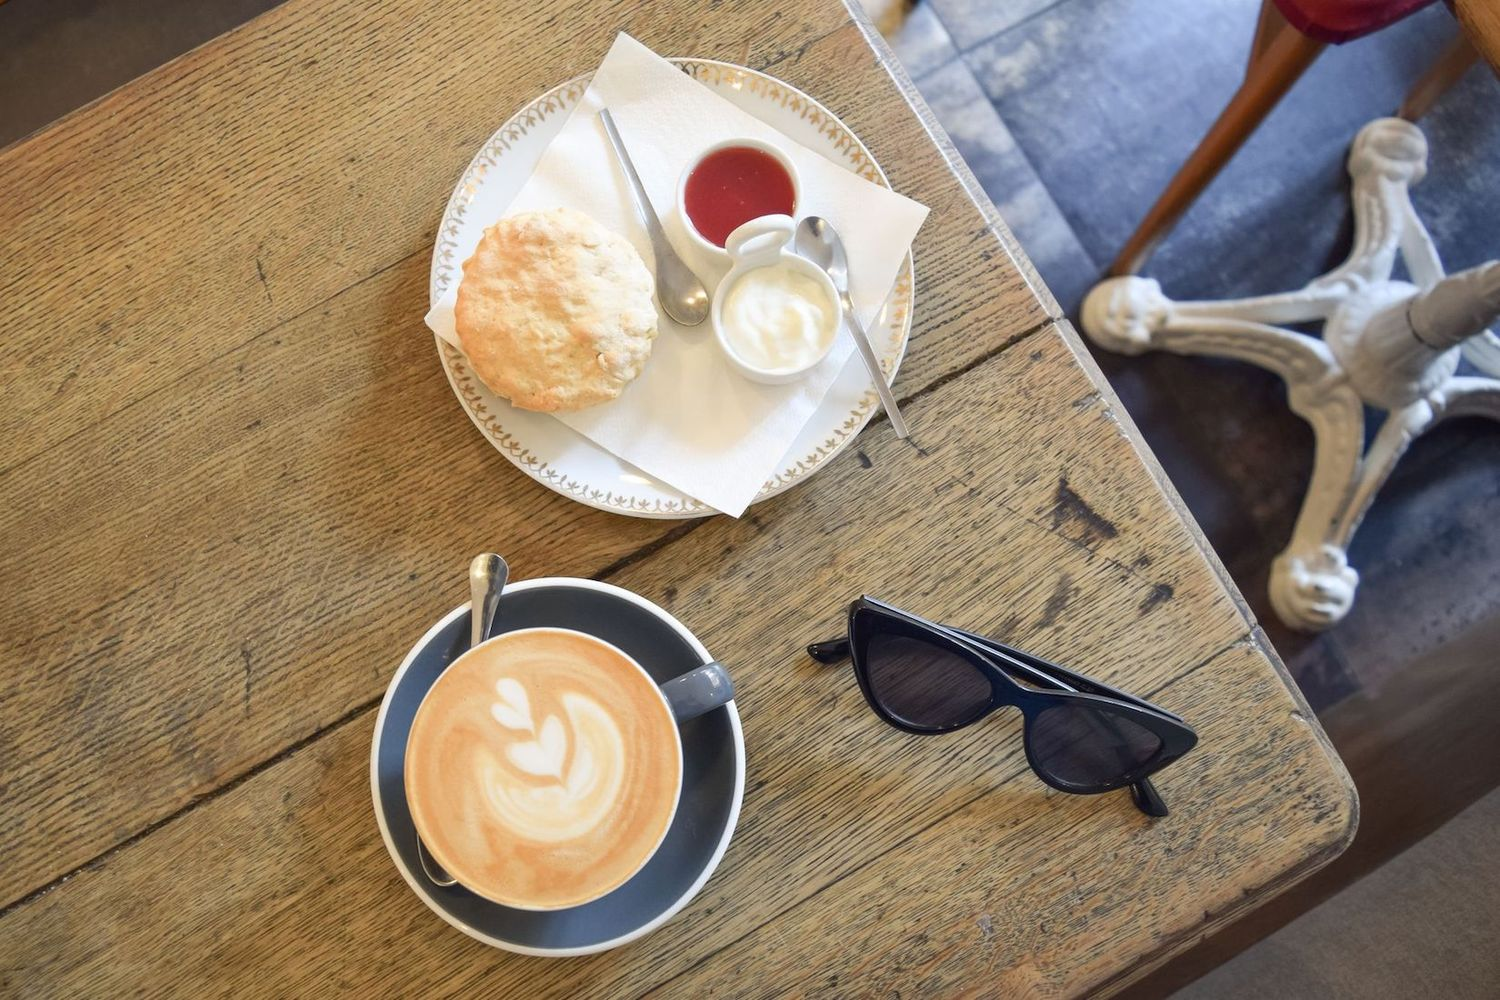 Specialty Coffee and Scone at Numero 220 Café, Paris